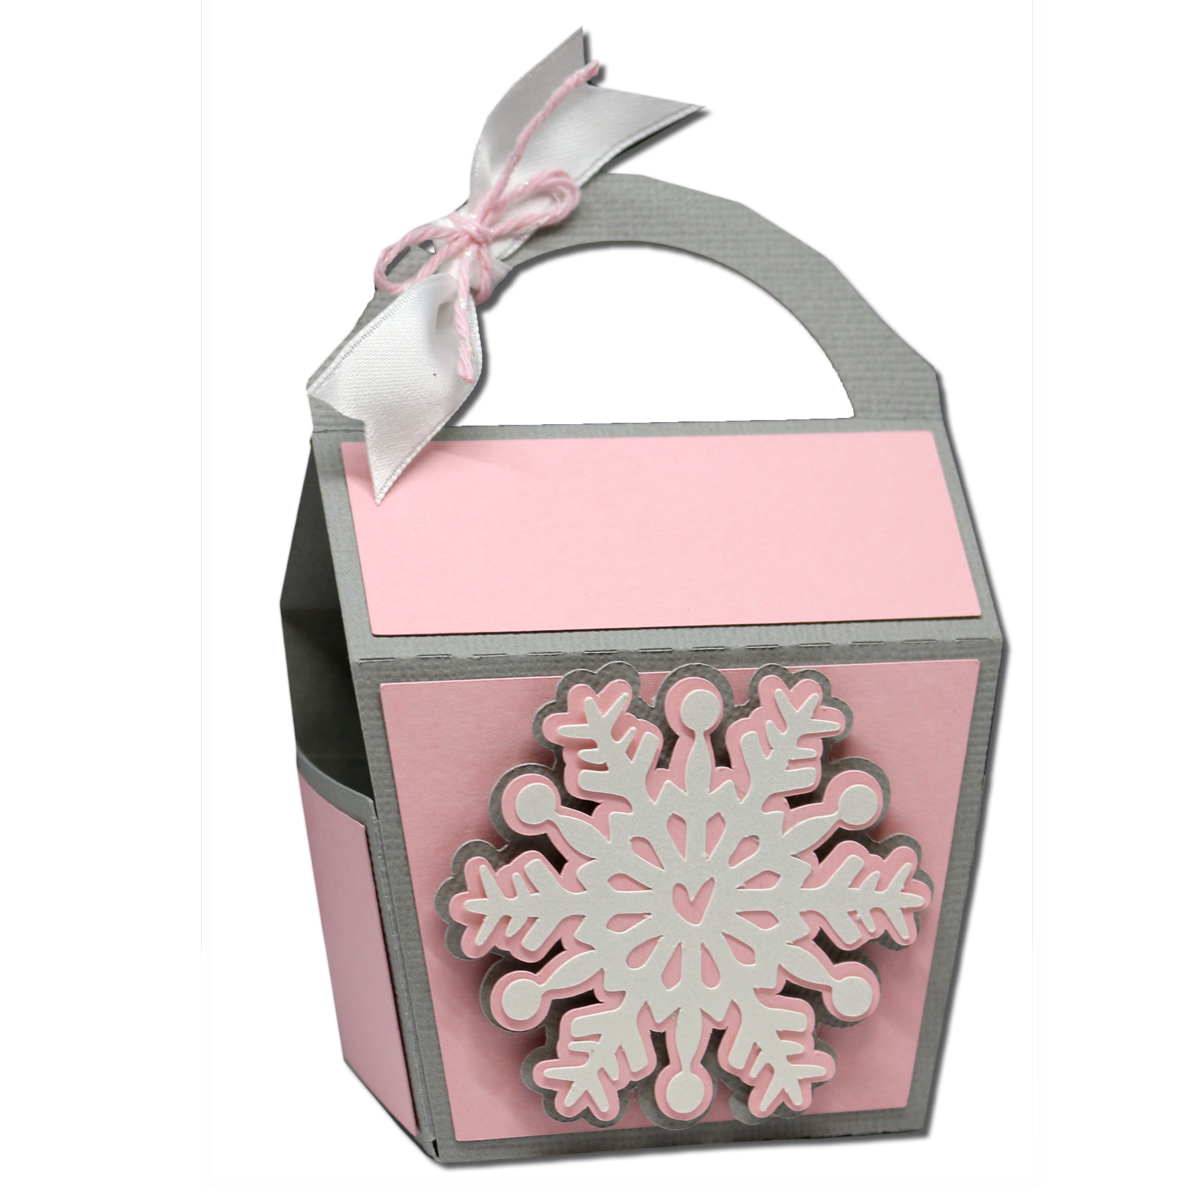 Bits of Paper: Holiday Cards and Favor Boxes